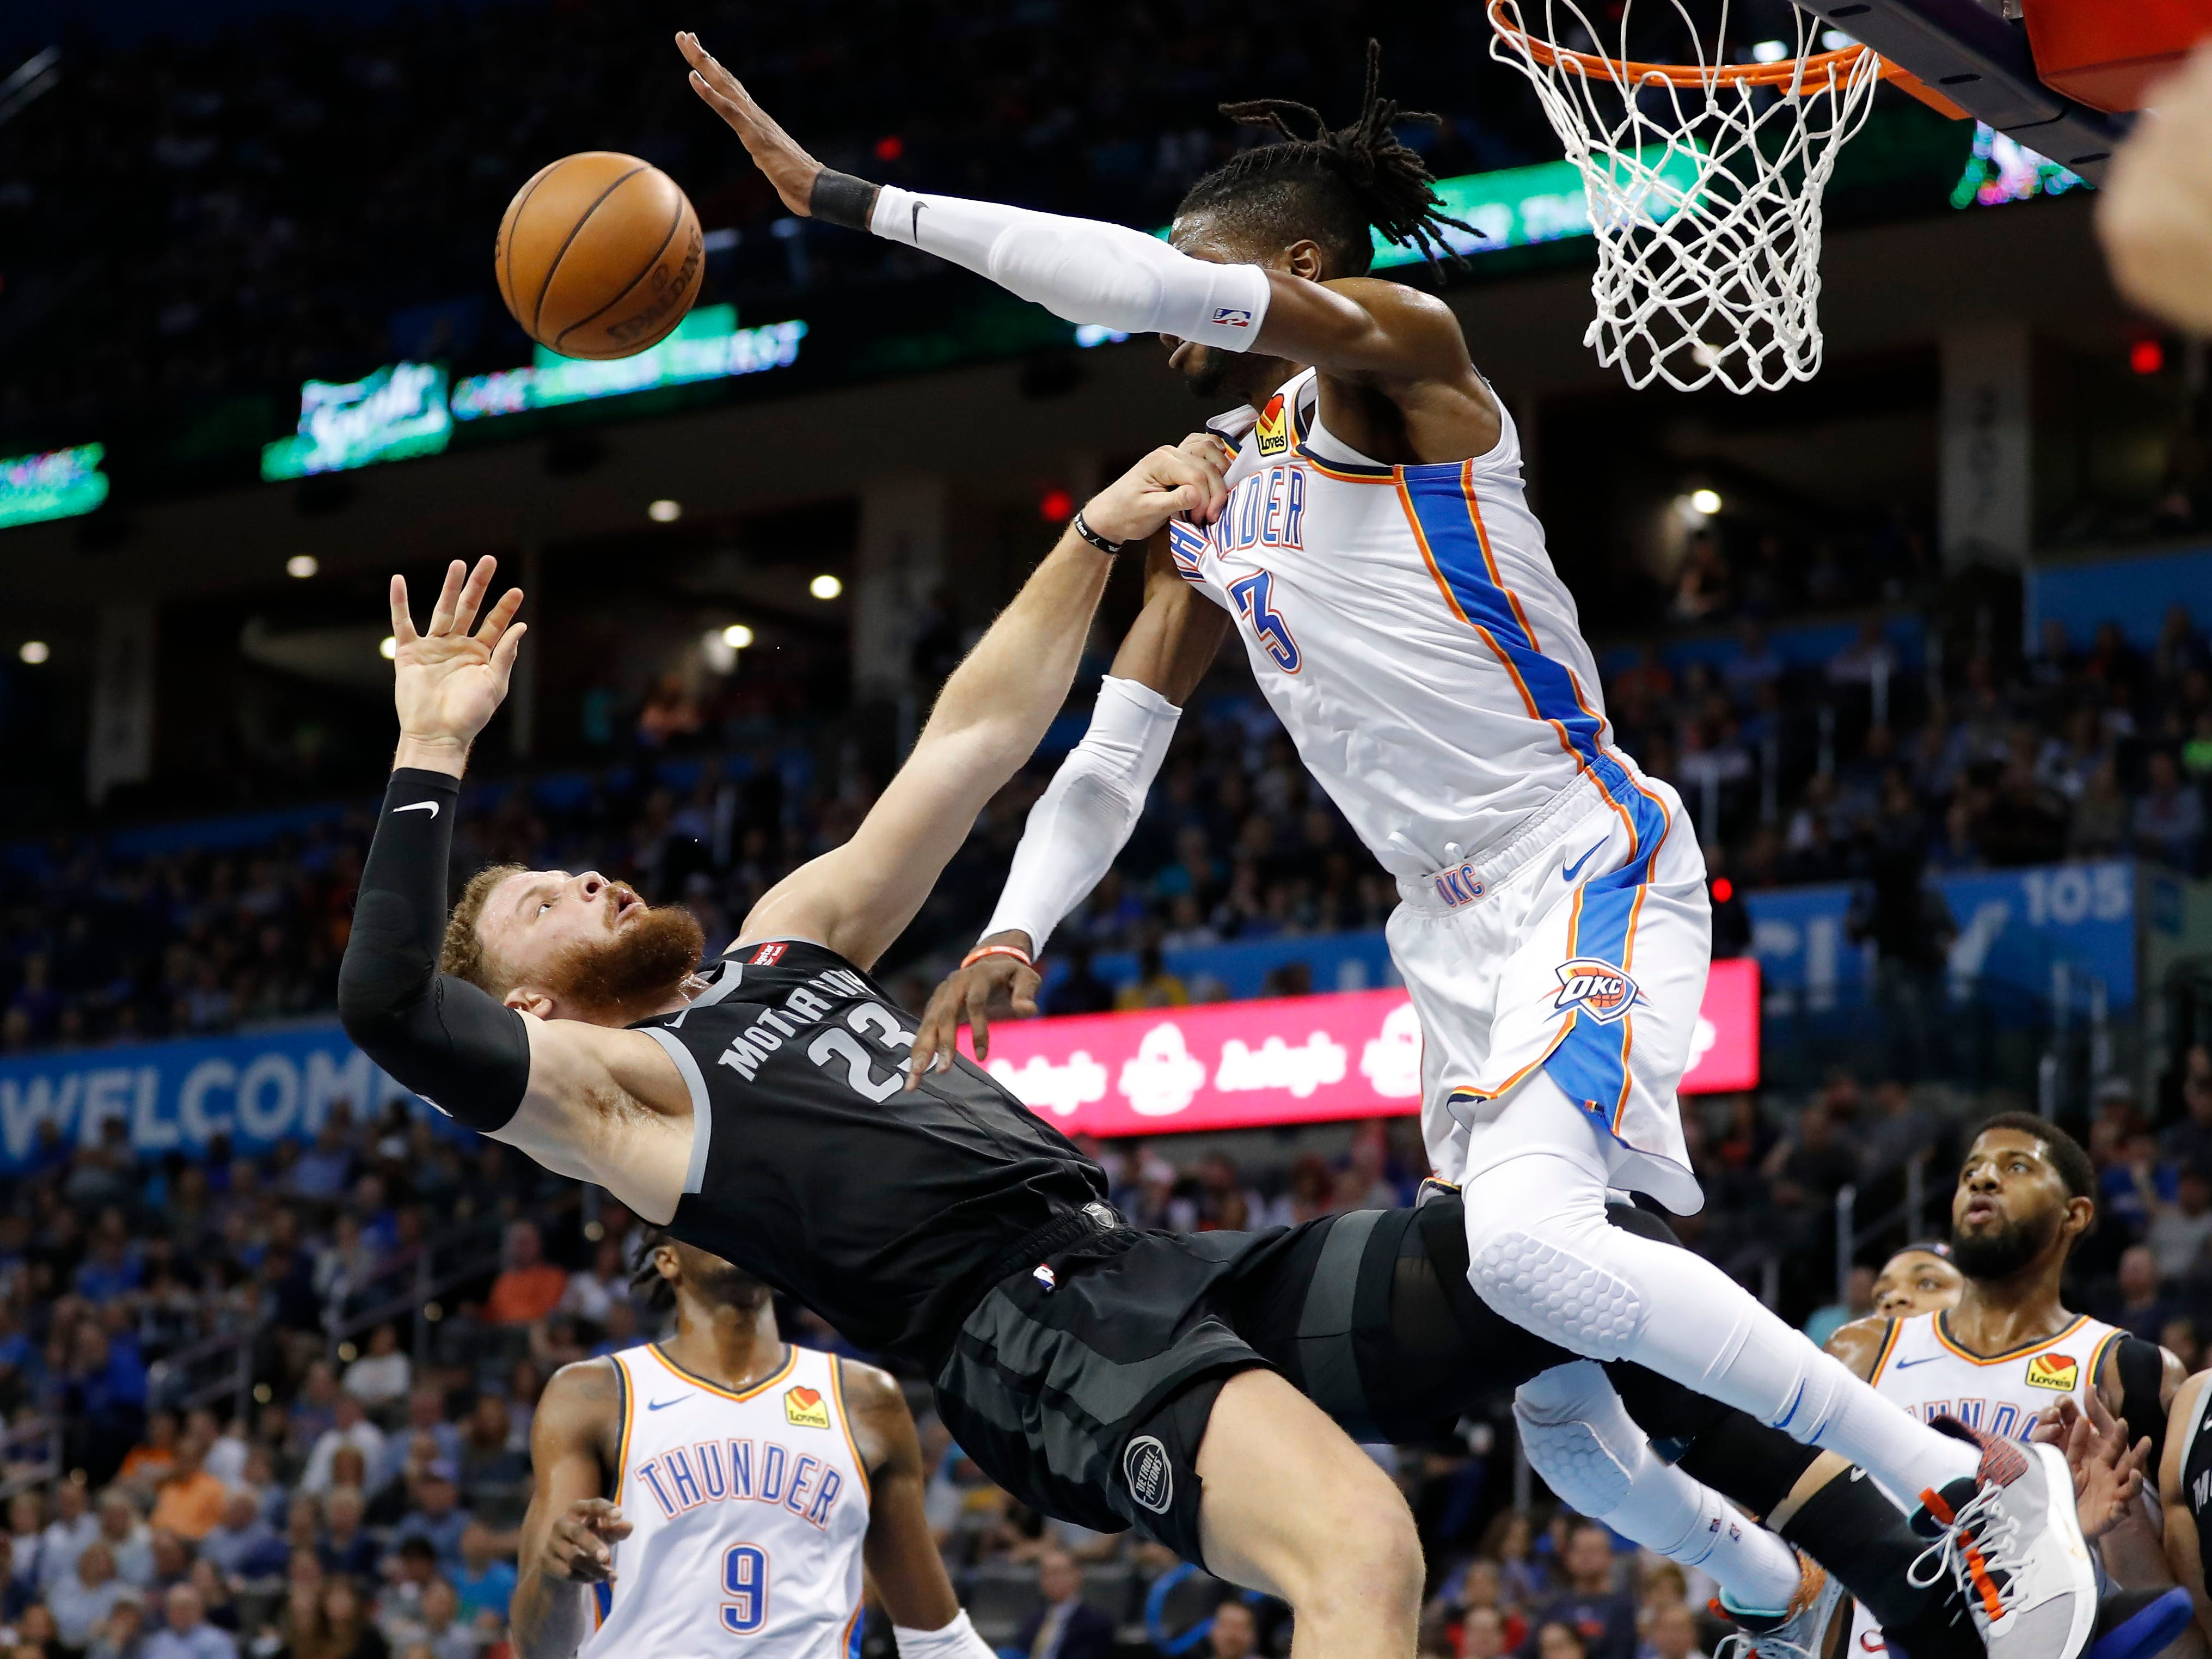 April 5: Pistons forward Blake Griffin (23) collides with Thunder defender Nerlens Noel (3) on his way to the basket during the first half in Oklahoma City.